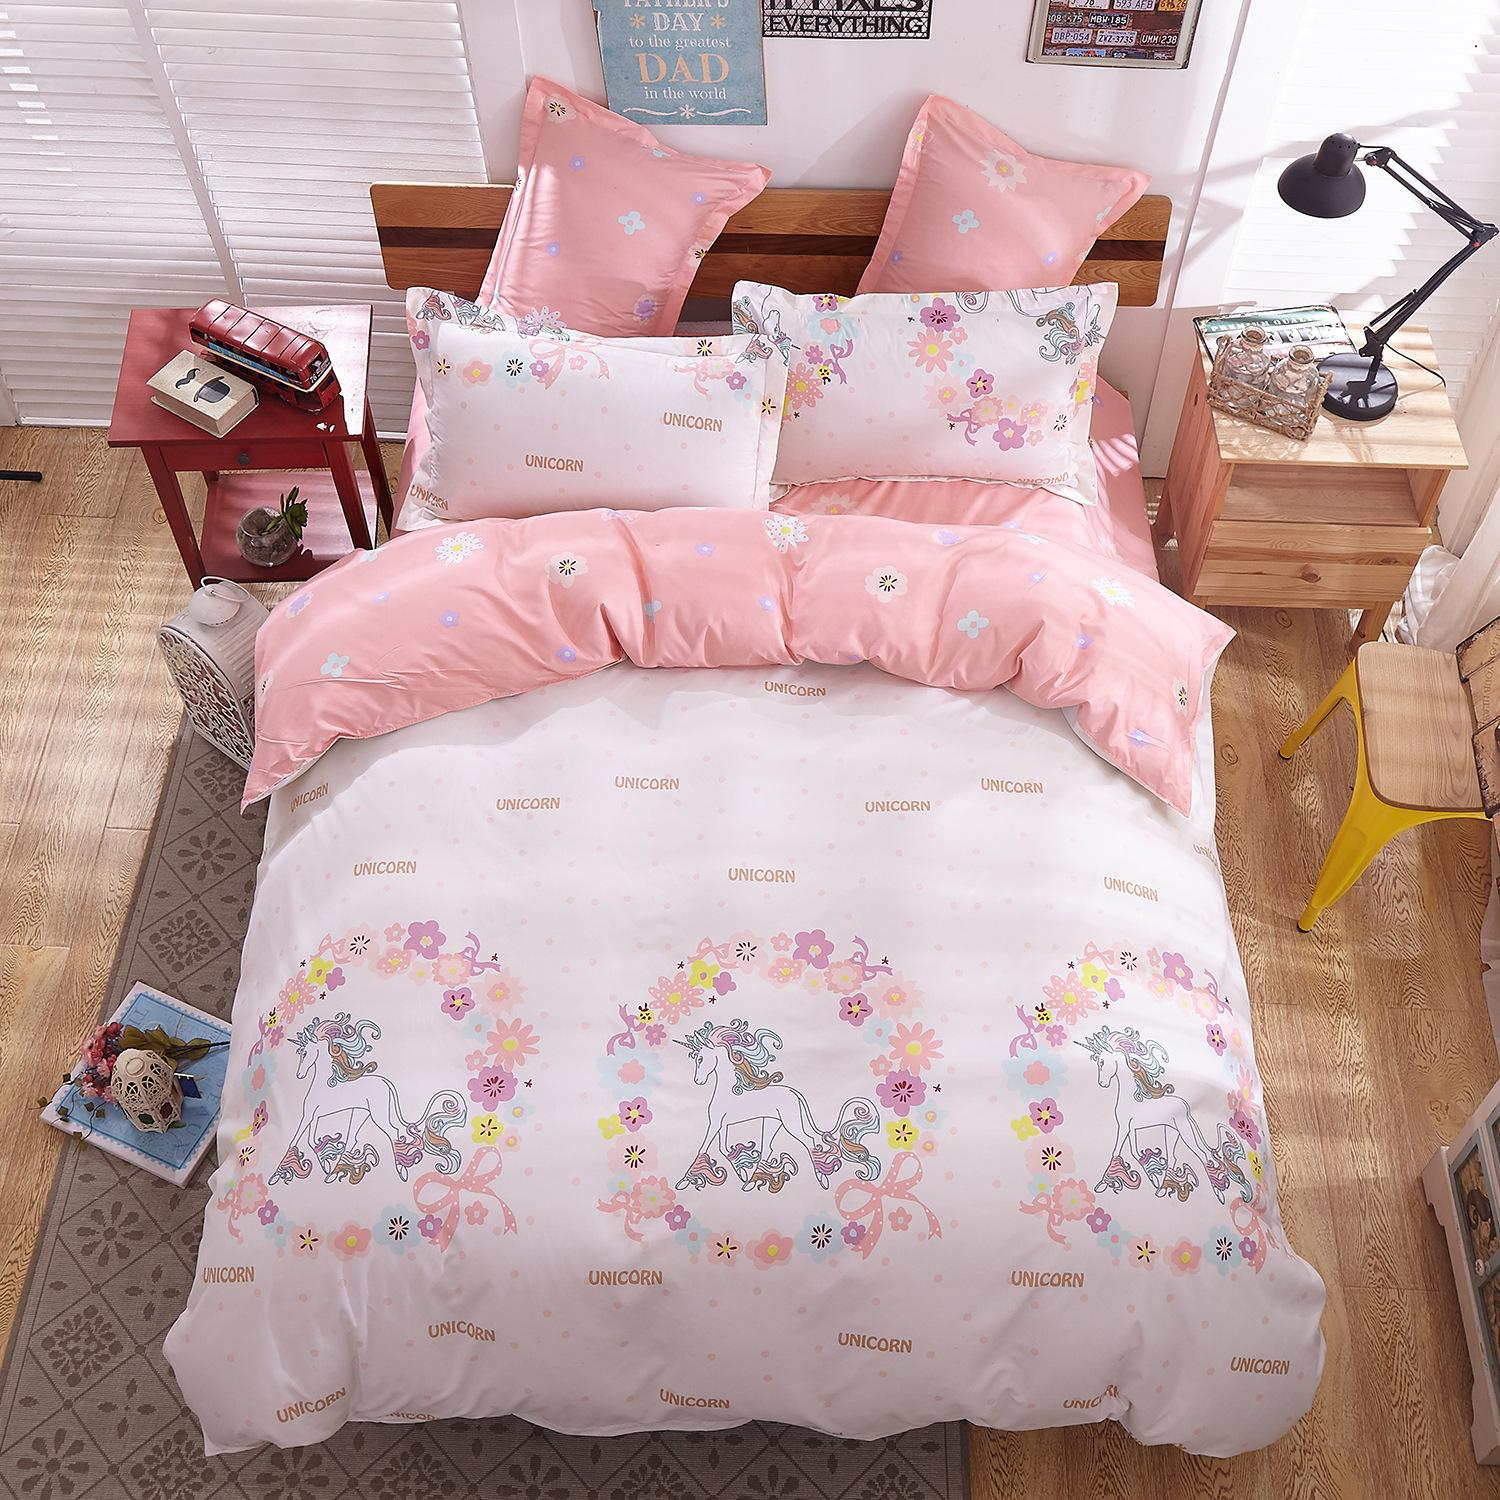 PINSV Bedlinens High Quality Cotton Fabric Queen/King Size Cover Set  Bedding Set   Intl